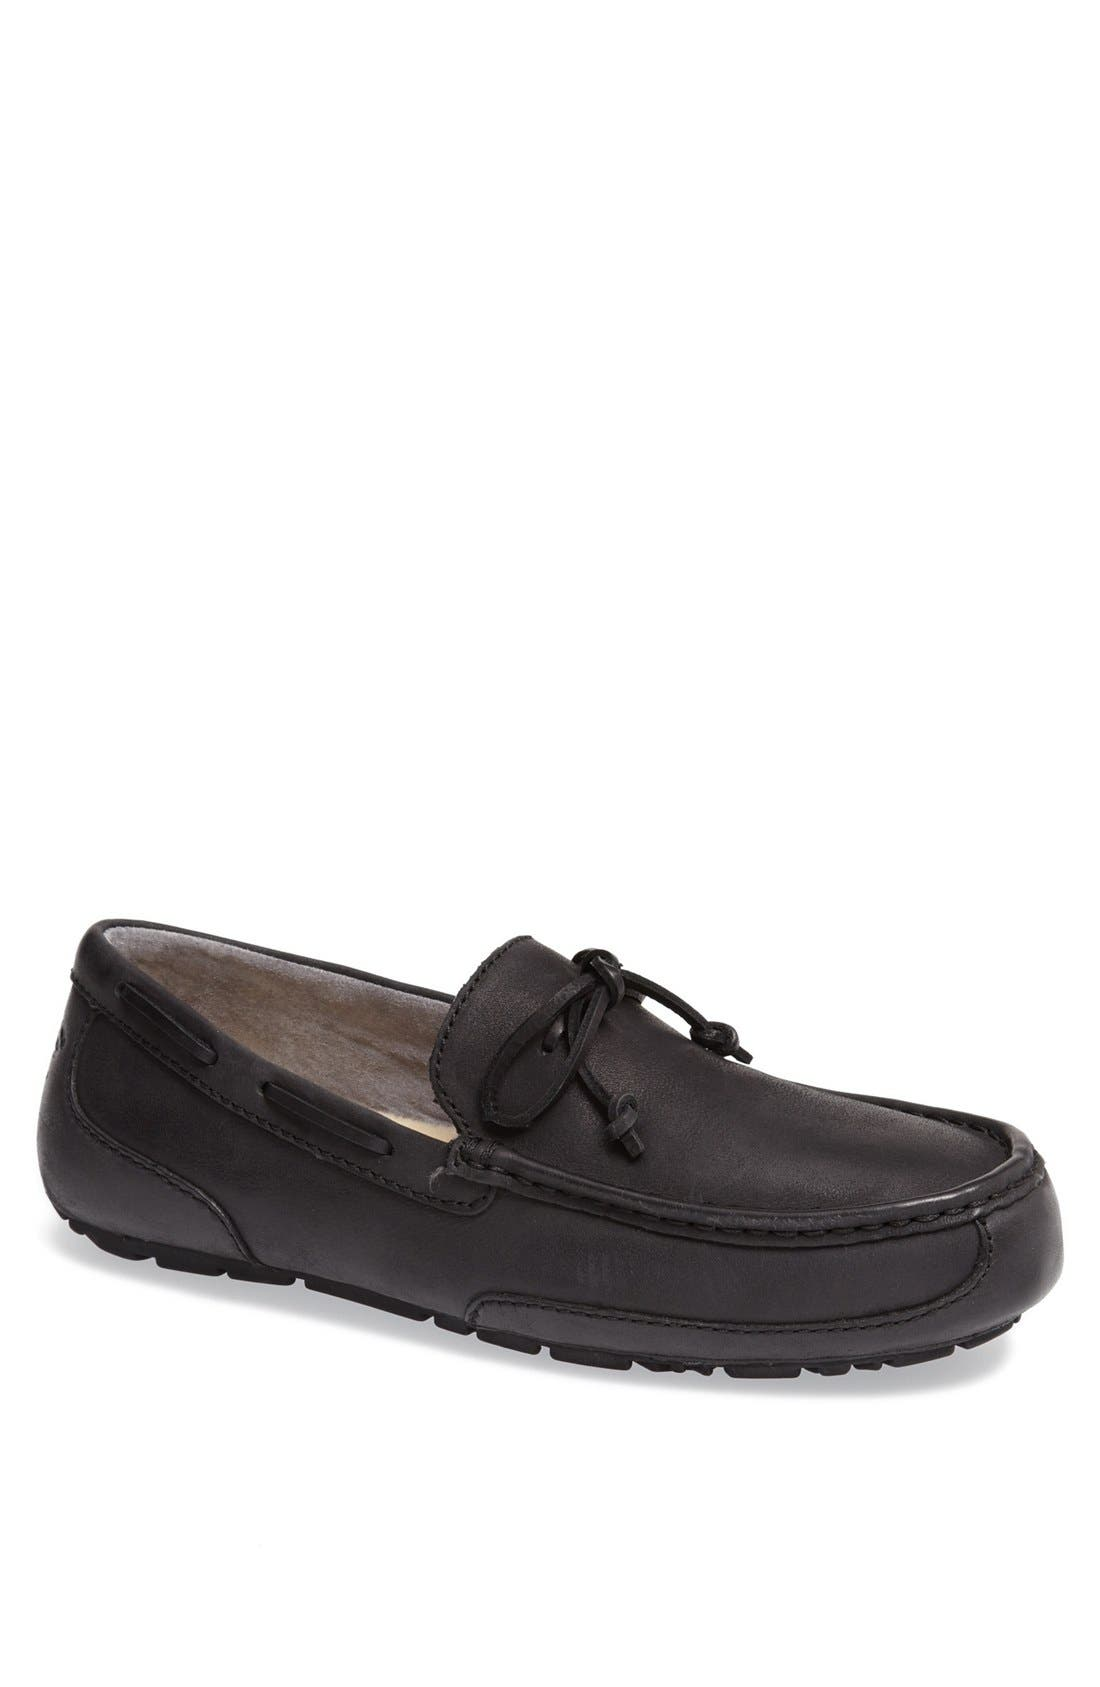 'Chester' Driving Loafer,                         Main,                         color, 001